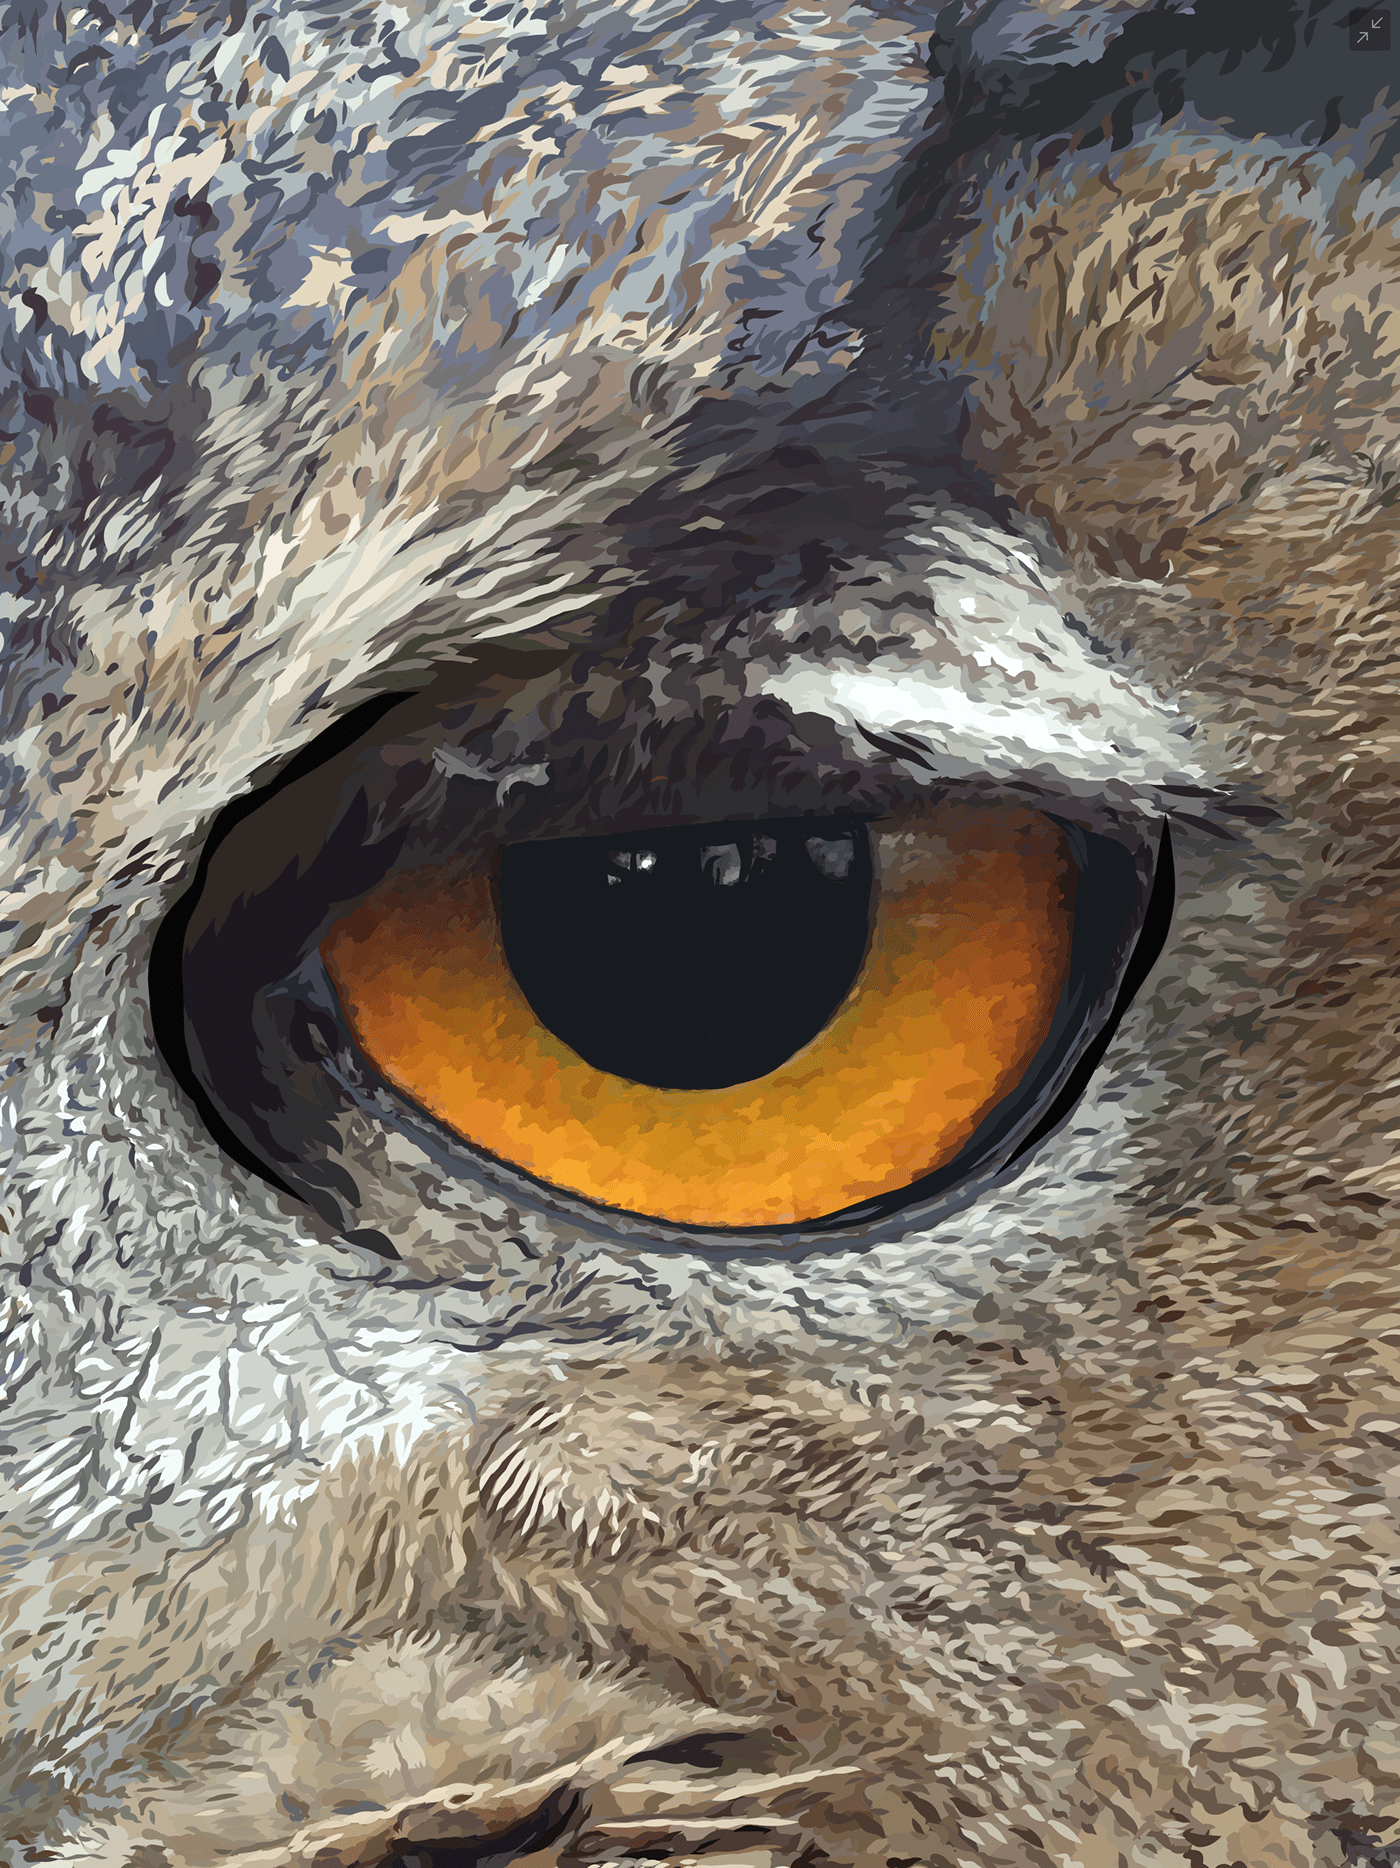 beak,bird,birds,britishwildlife,detail,DigitalIllustration,Drawing ,essexowl,eyes,feathers,Fur,hoot,ILLUSTRATION ,longearedowl,Nature,natureillustration,nighttime,owl,owls,ukwildlife,vector,vectorart,wildlife